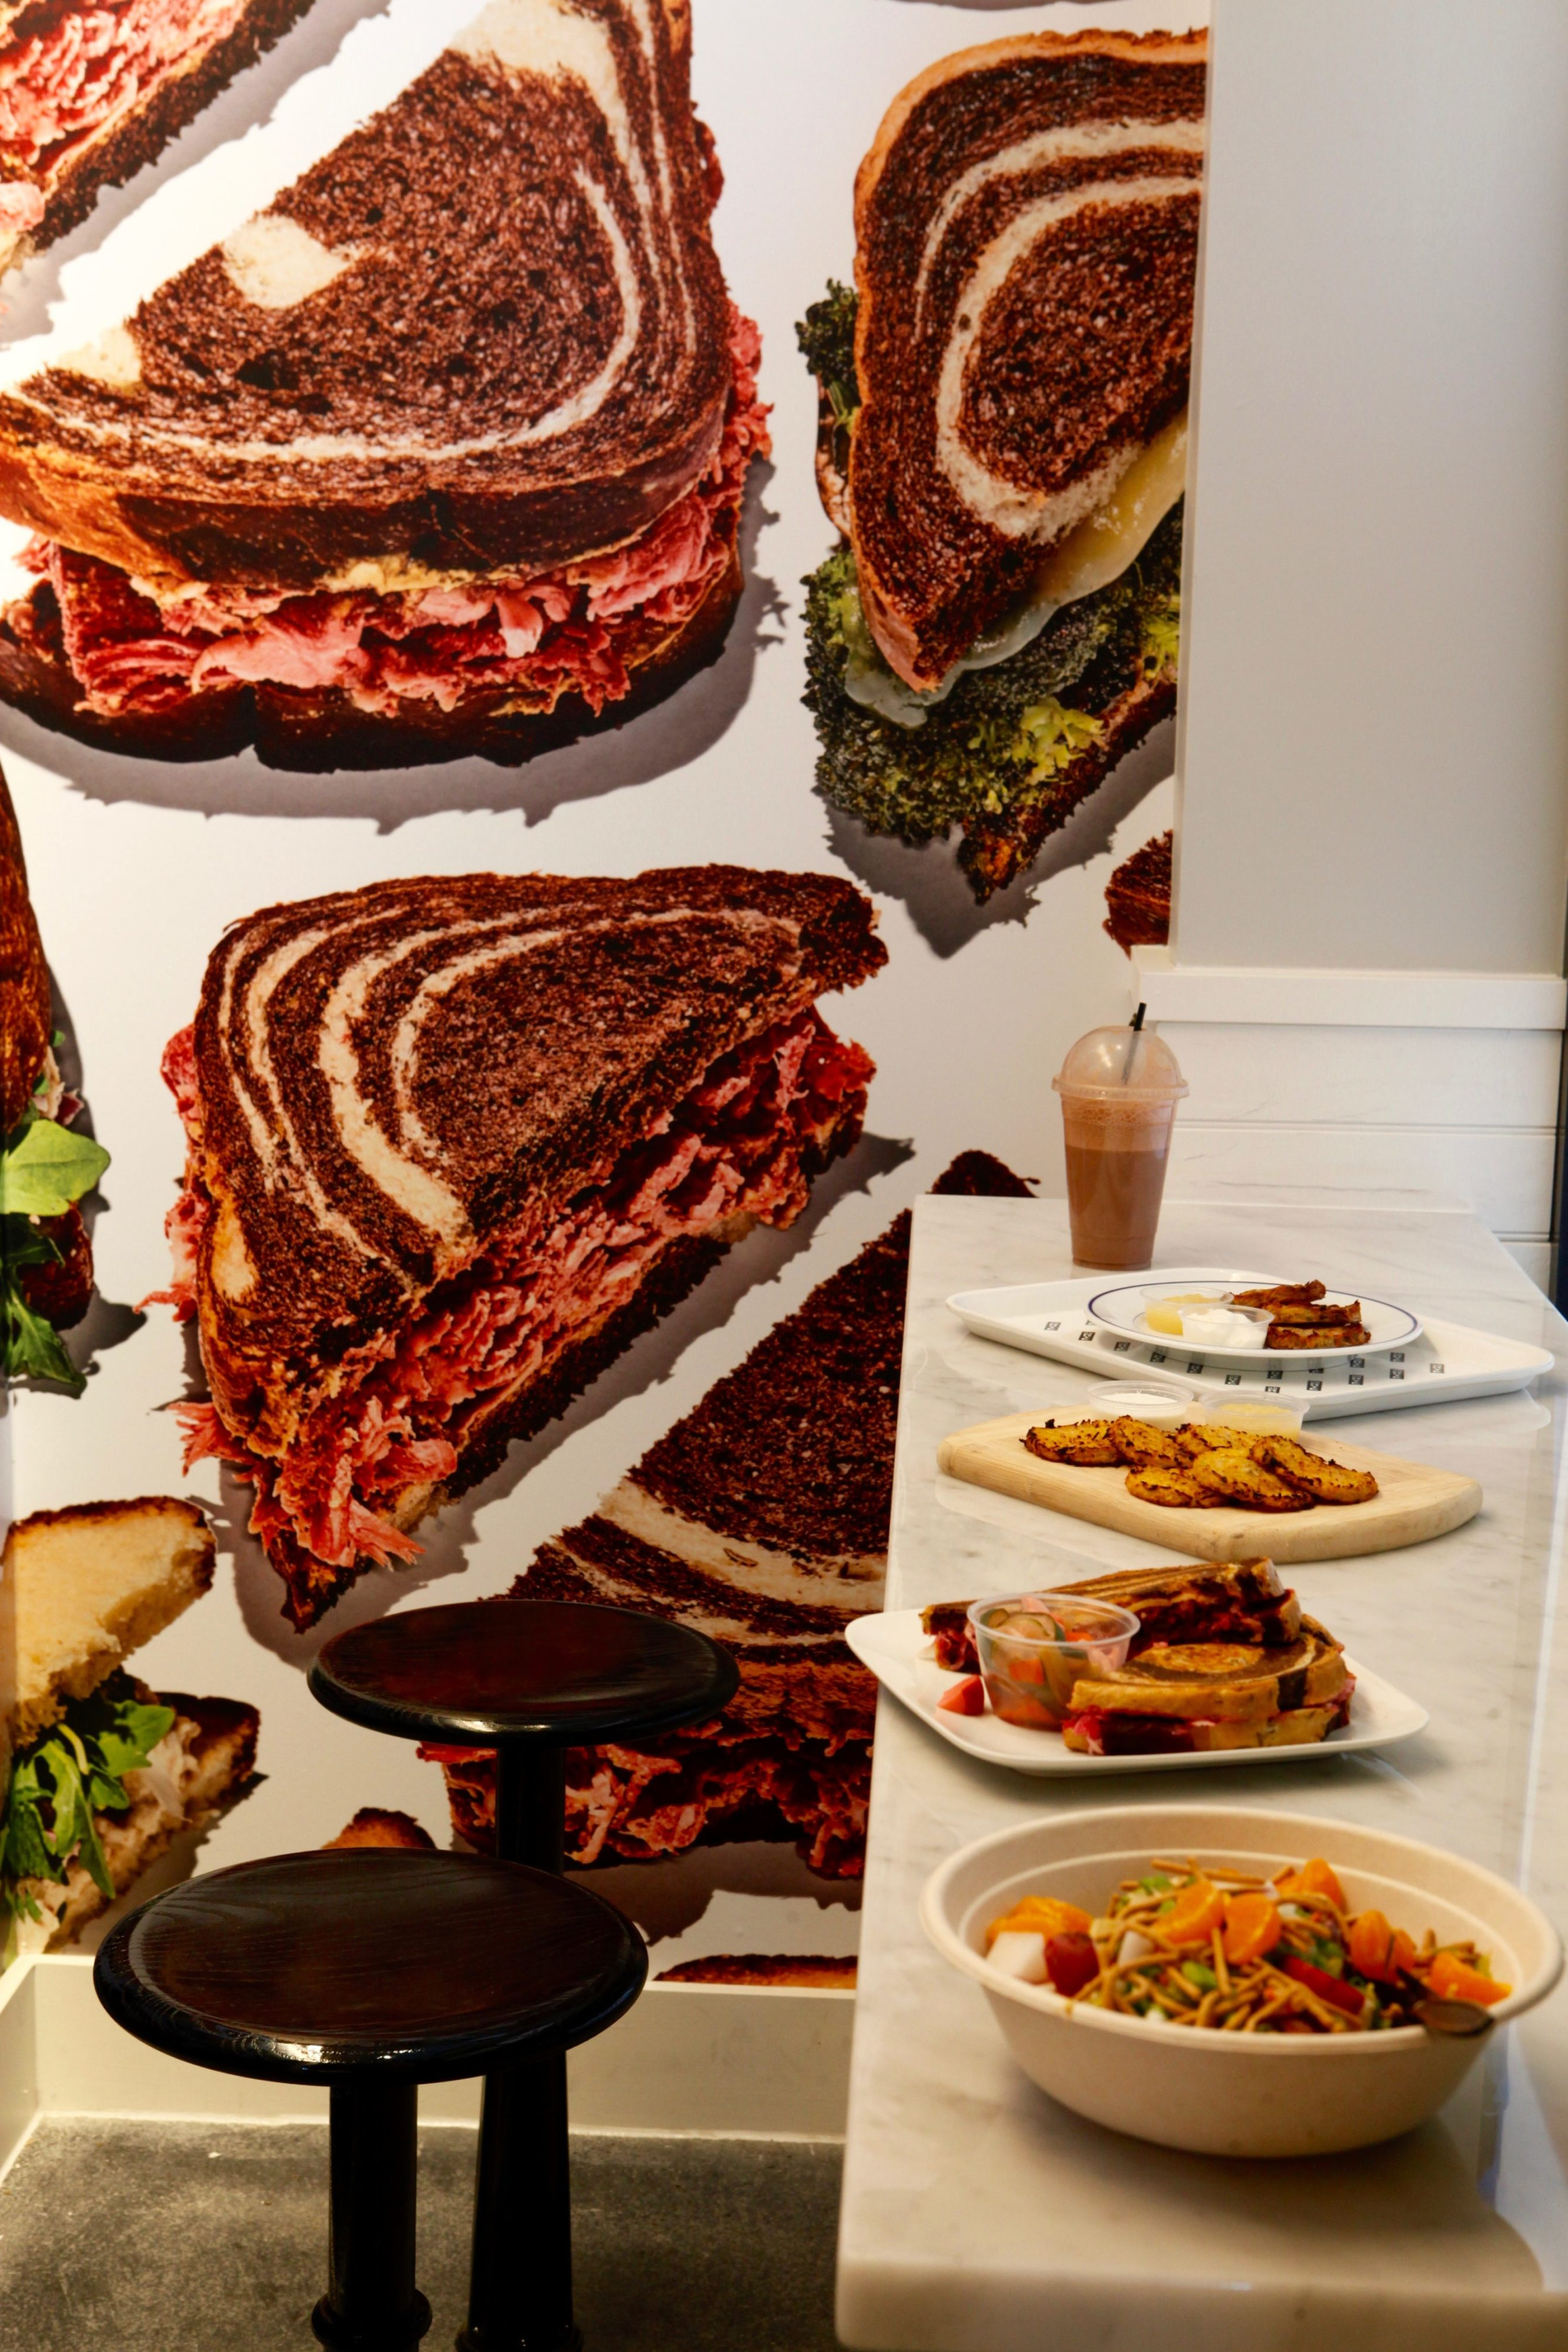 Sandwiches go on the plate and the wall thanks to DC-based design team HapstakDemetriou.